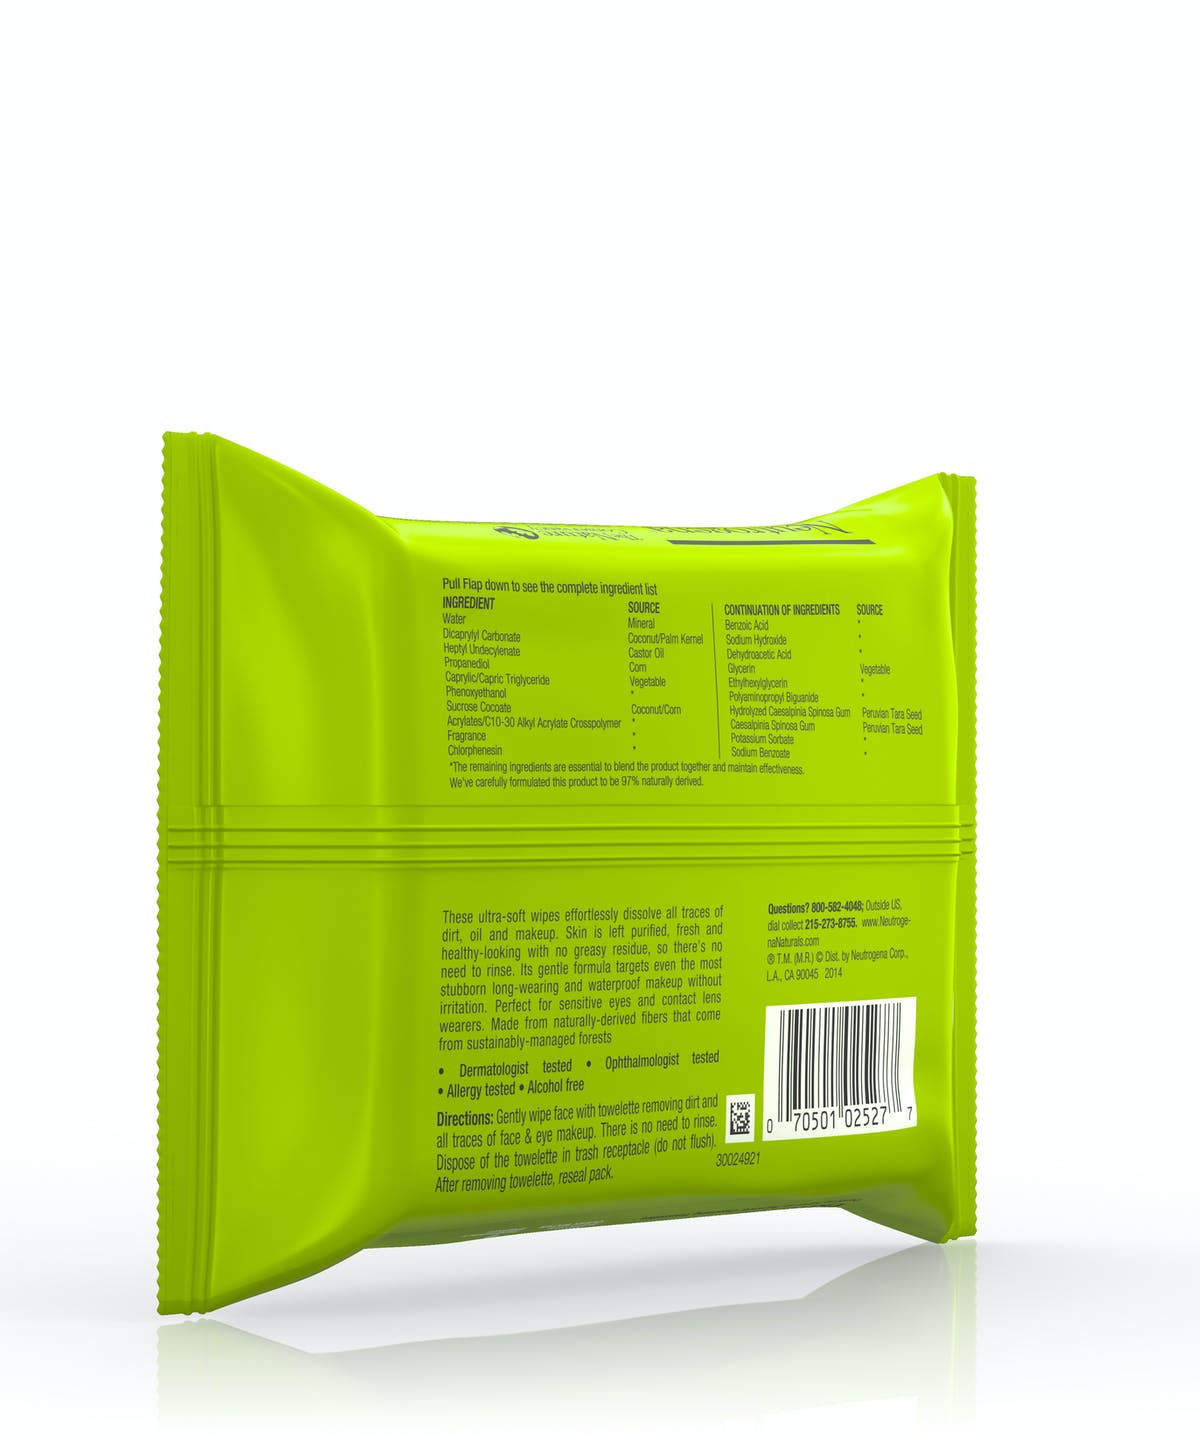 Naturals Purifying Makeup Remover Cleansing Towelettes by Neutrogena #8